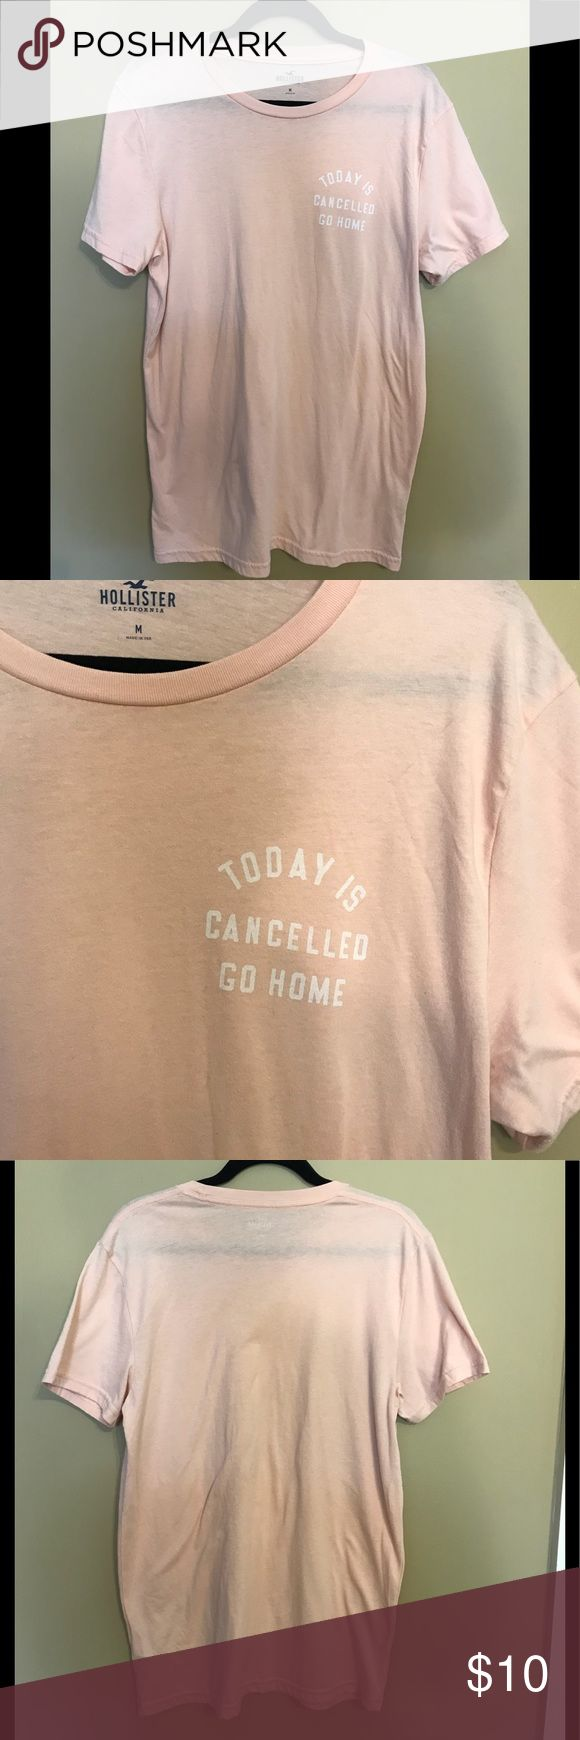 """Hollister California Men's Tee Shirt Hollister California men's tee shirt is size M. Slogan on Shirt is, """"Today is cancelled go home"""". The color is a peachy pink and the tee is NWOT. Hollister California Shirts Tees - Short Sleeve"""